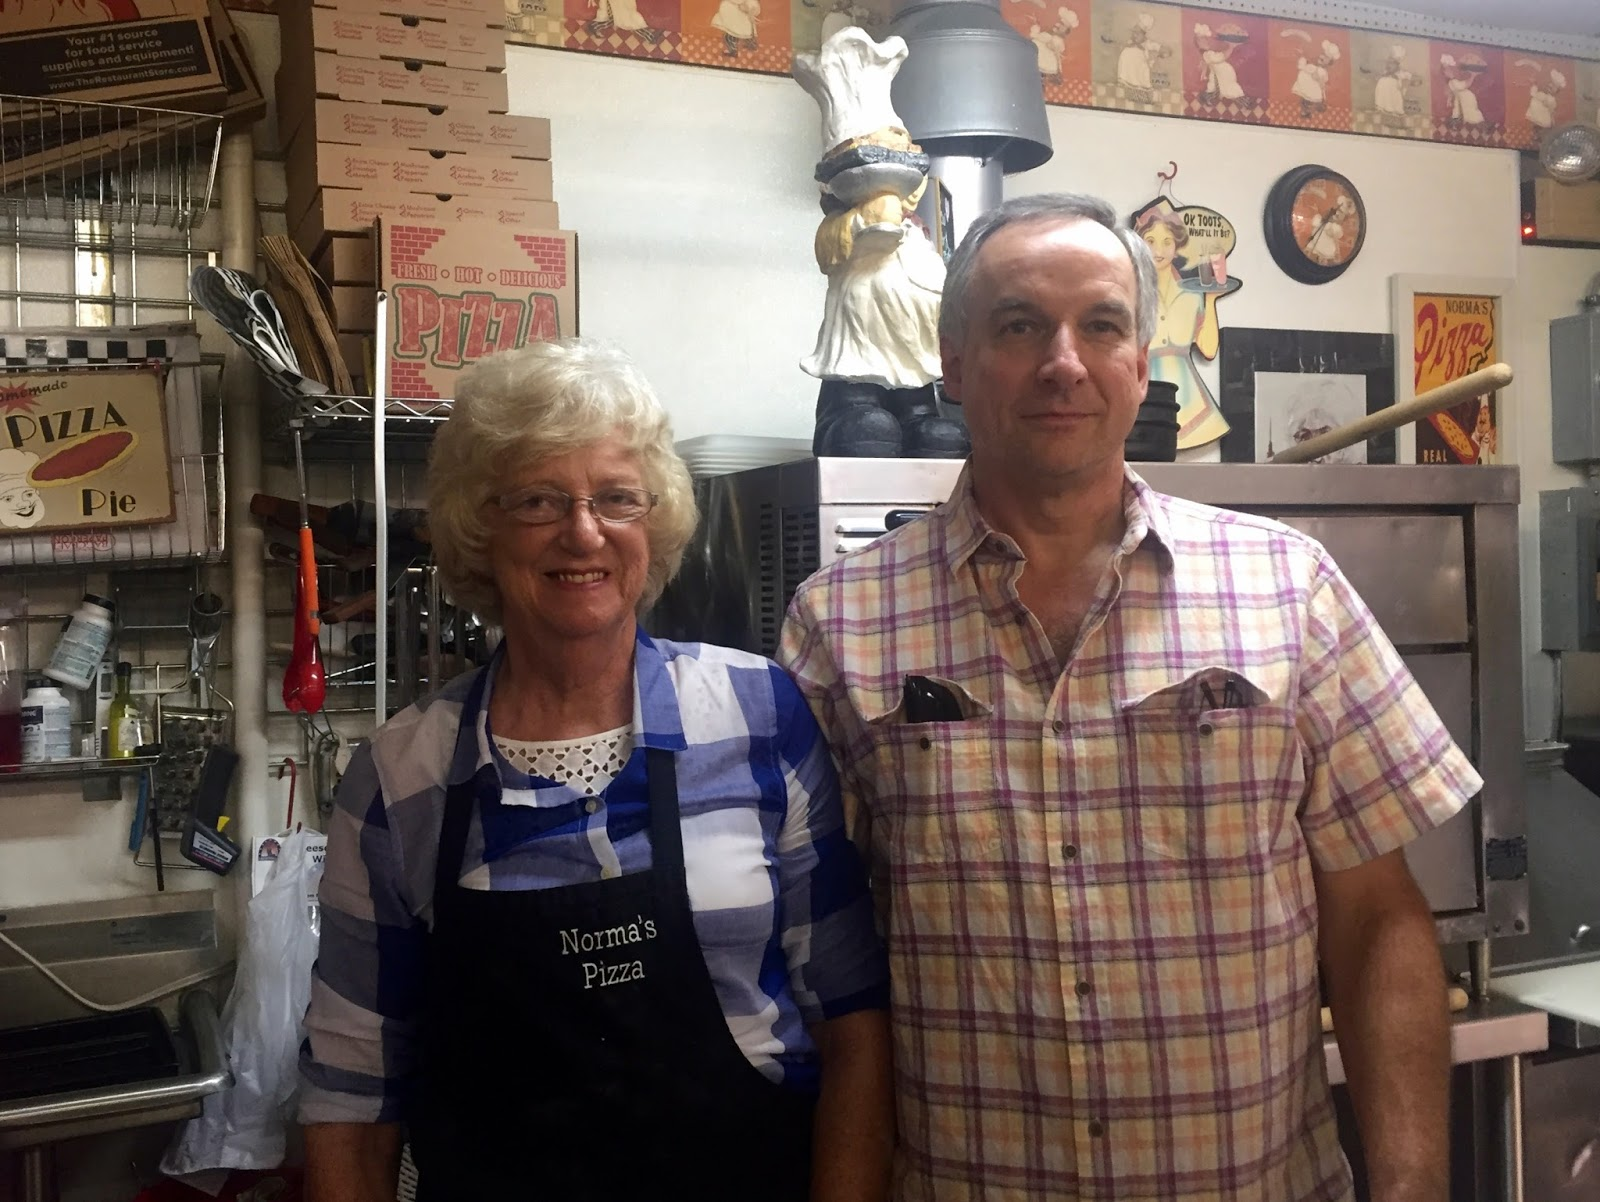 pizza quixote feature story norma s pizza manheim pa roots it is truly a treat and a privilege to chat norma and eat that astonishing pizza put it on your bucket list